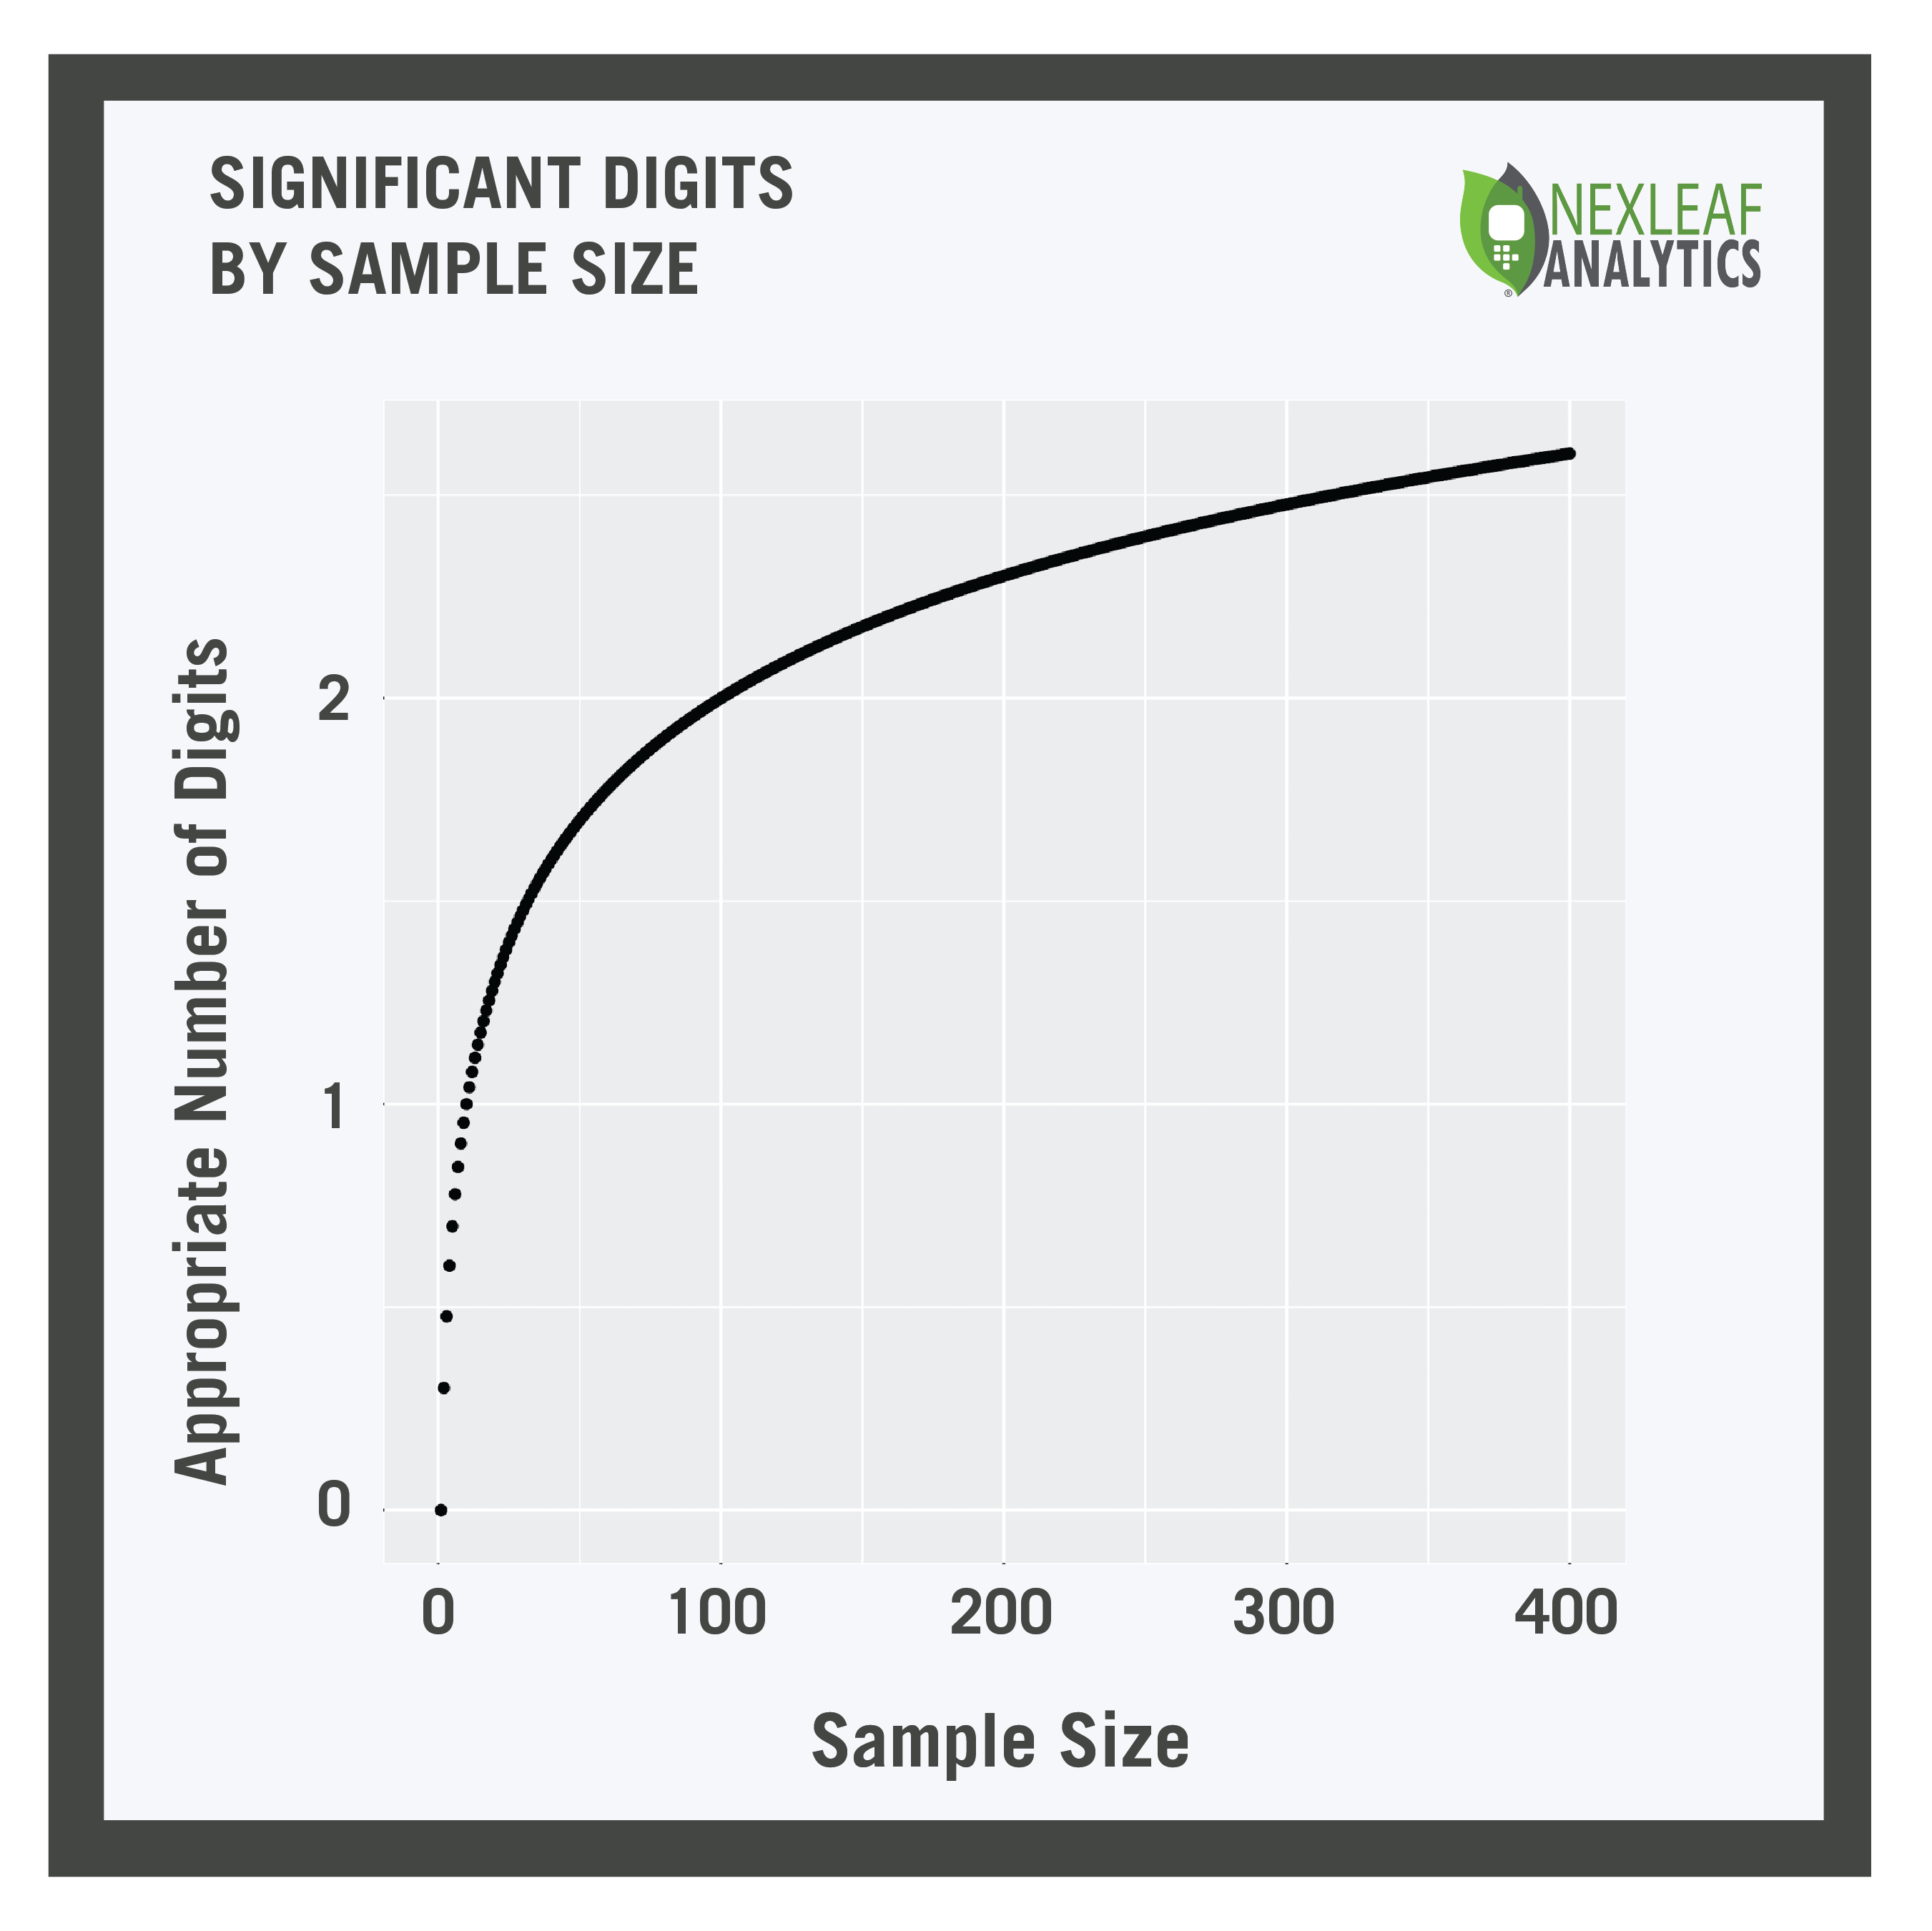 significant_digits_by_sample_size